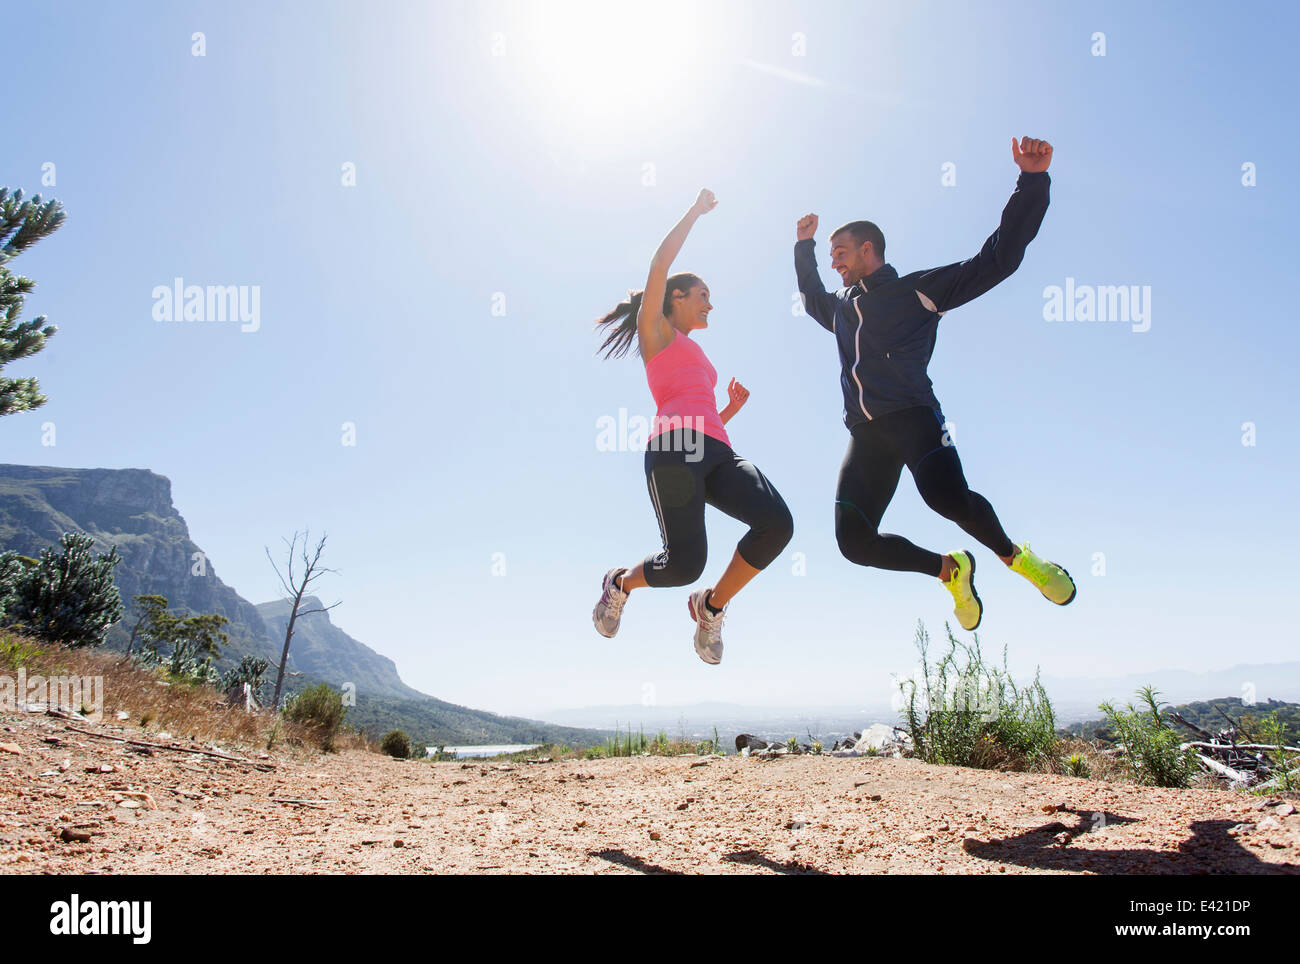 Young joggers jumping in mid air - Stock Image